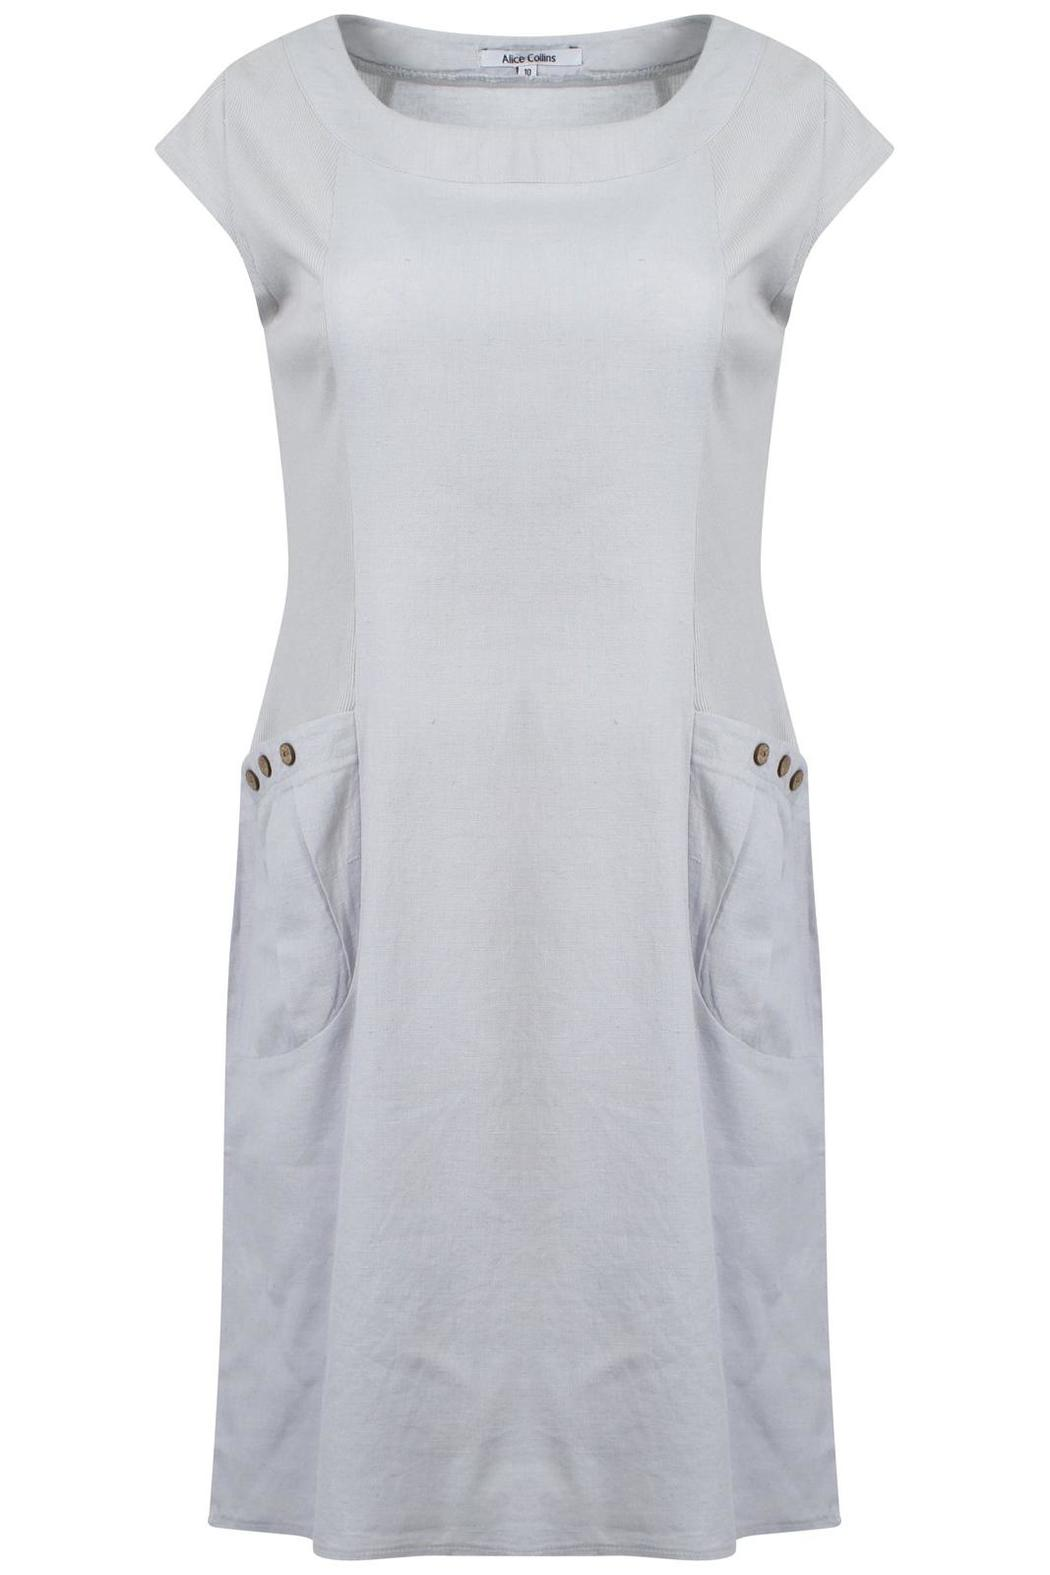 Alice Collins Linen Dress Grey From West Yorkshire By